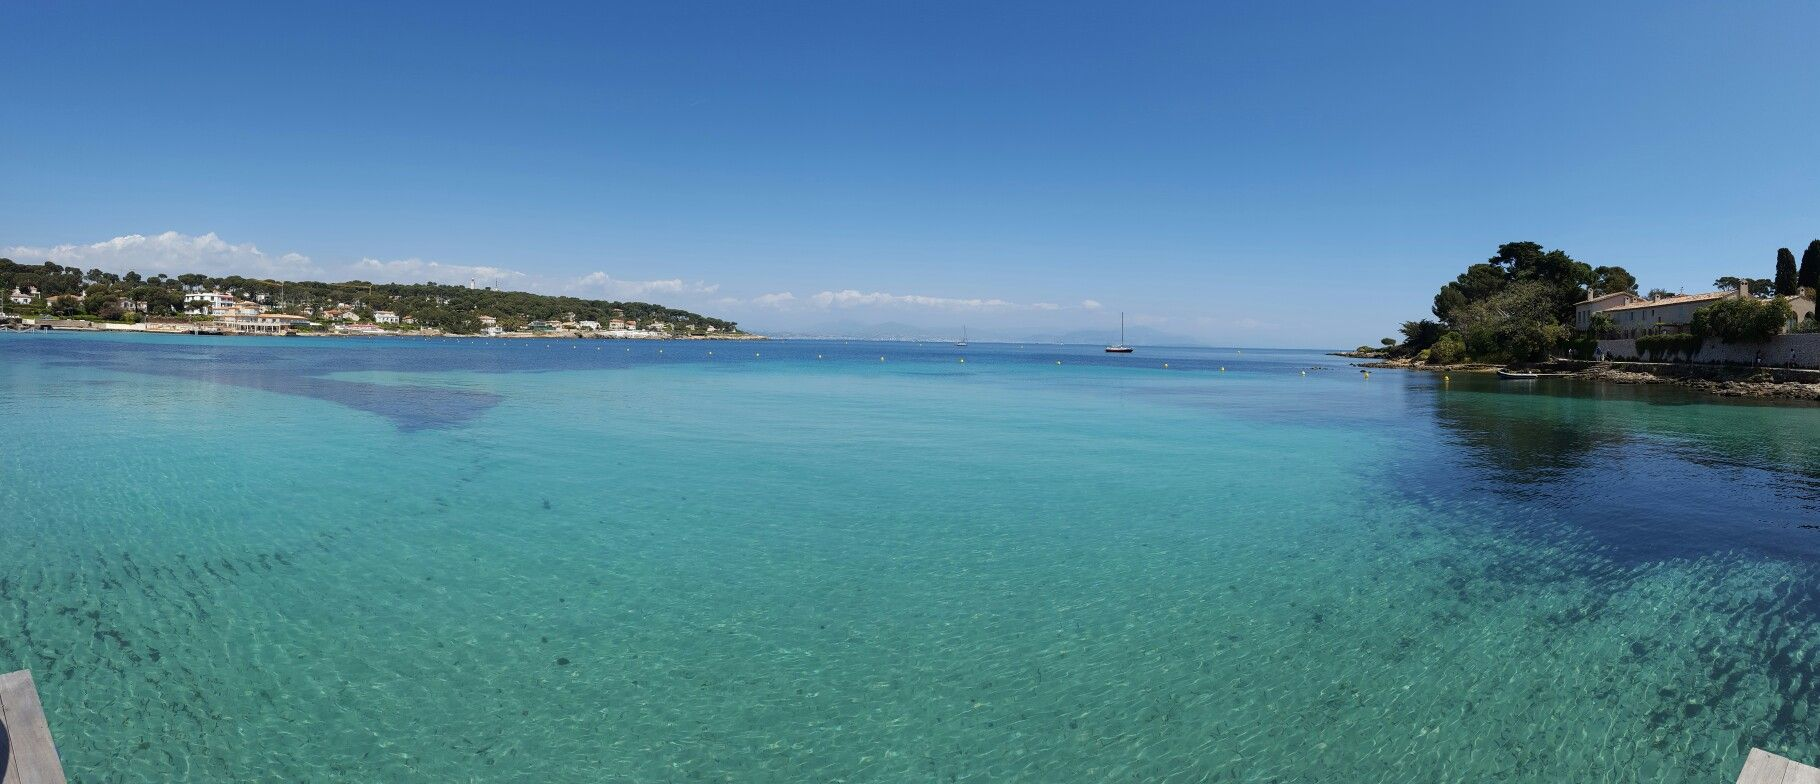 Antibes in France